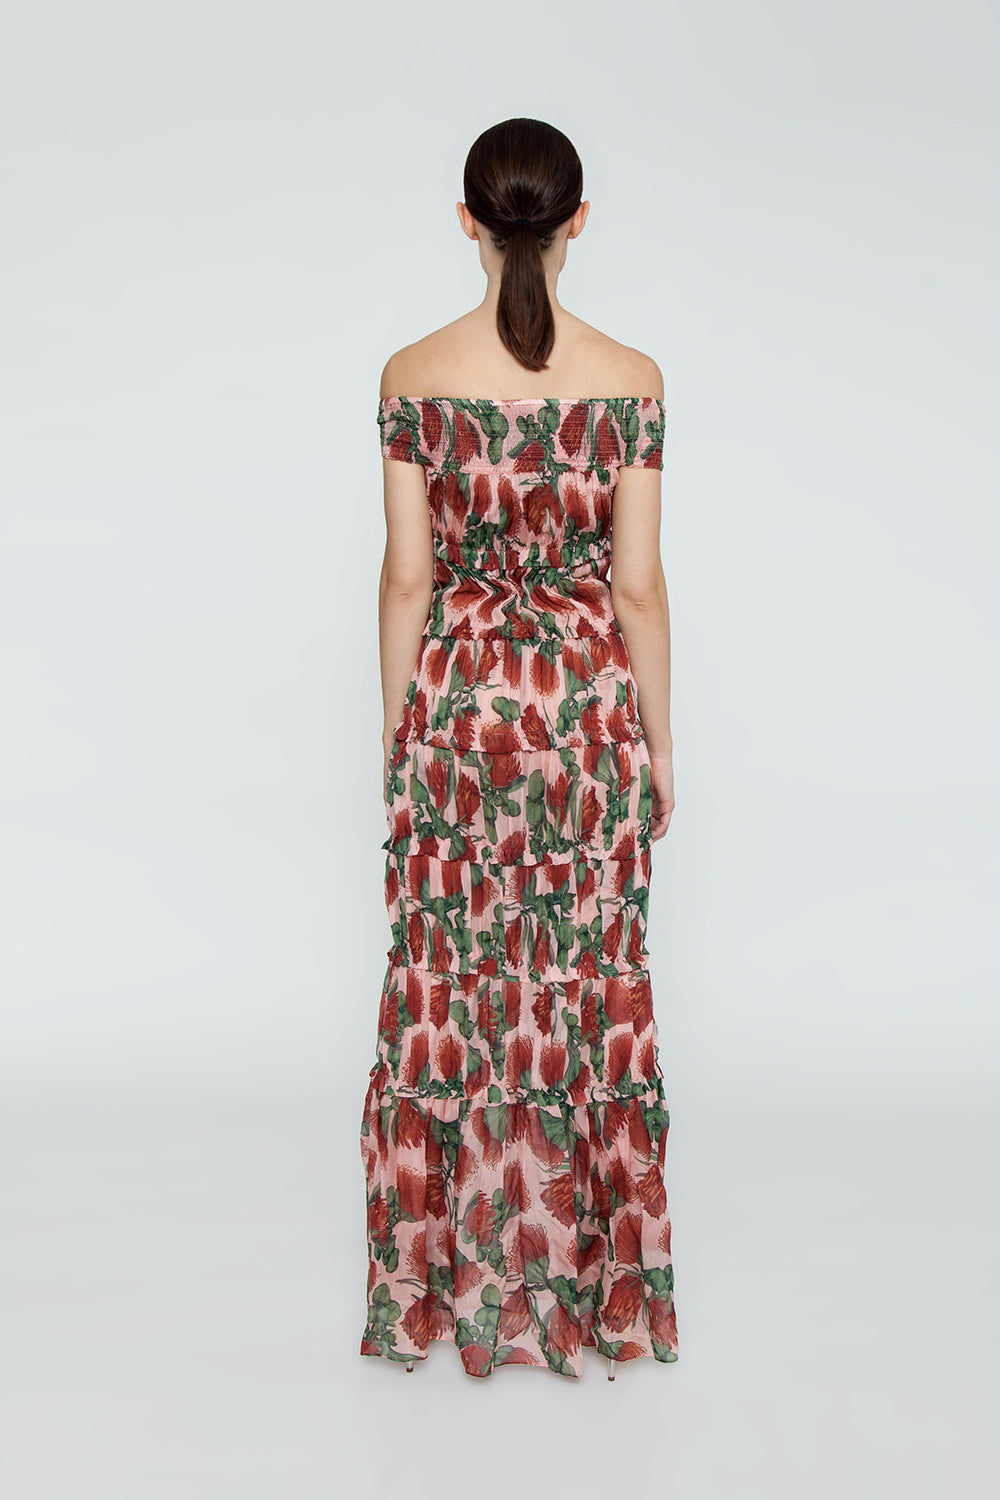 ADRIANA DEGREAS Off The Shoulder Tier Long Dress - Fiore Rose Print Dress | Fiore Rose Print| Adriana Degreas Off The Shoulder Tier Long Dress - Fiore Rose Print Maxi dress Smocked off shoulder  Ruffle tier detail  Back View